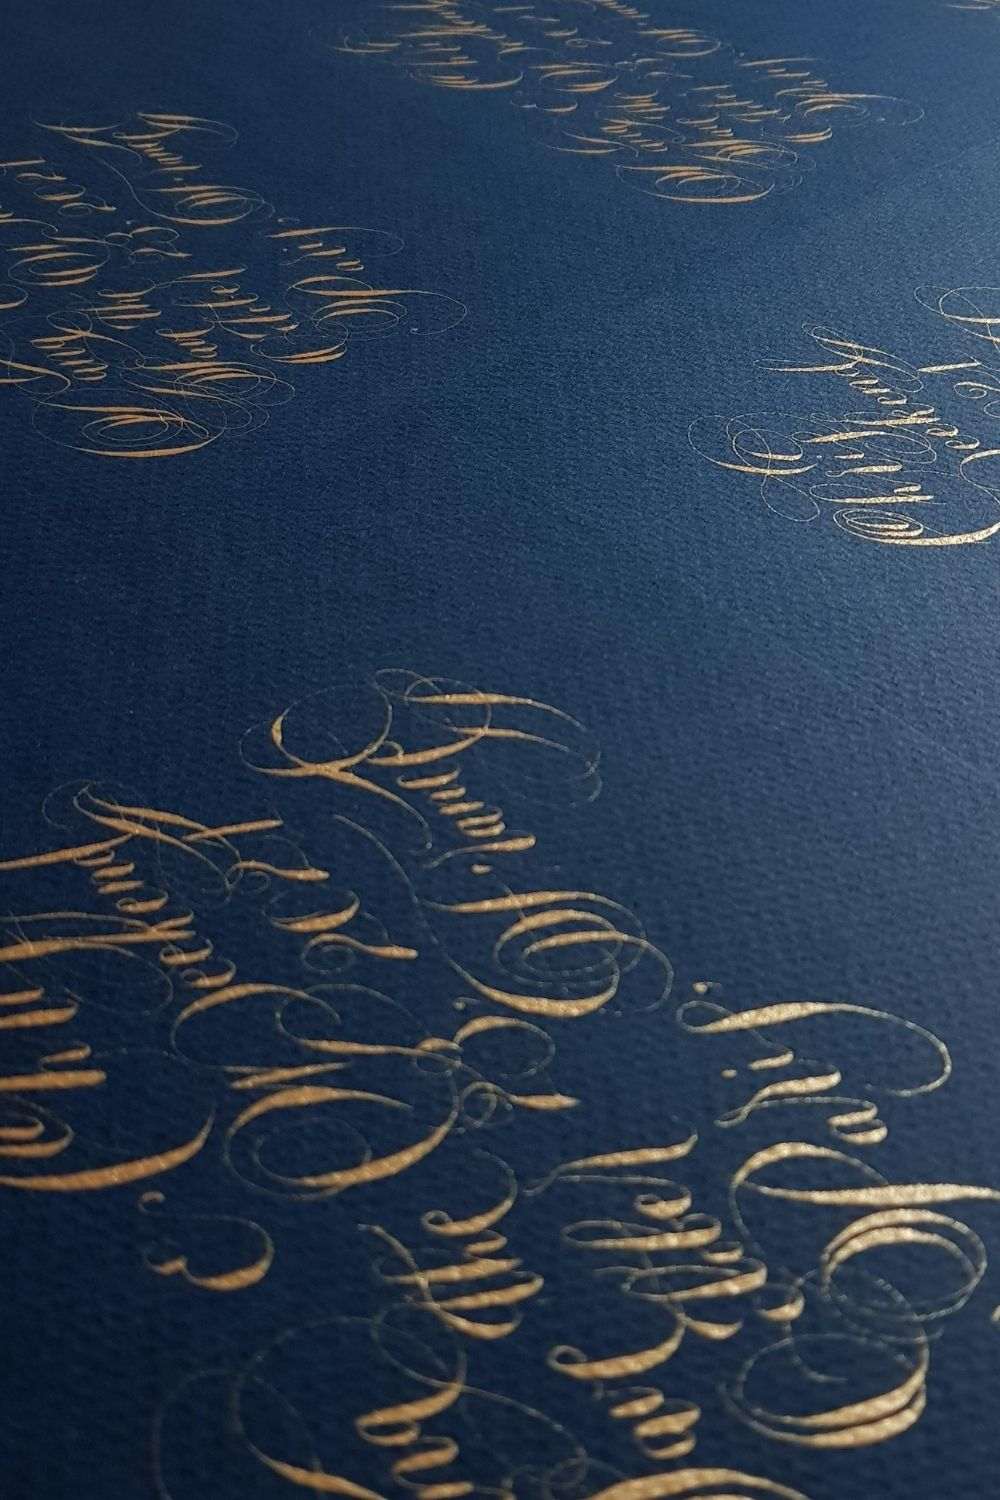 Ornate gold handwritten calligraphy on navy blue for a gold and navy blue invitation design